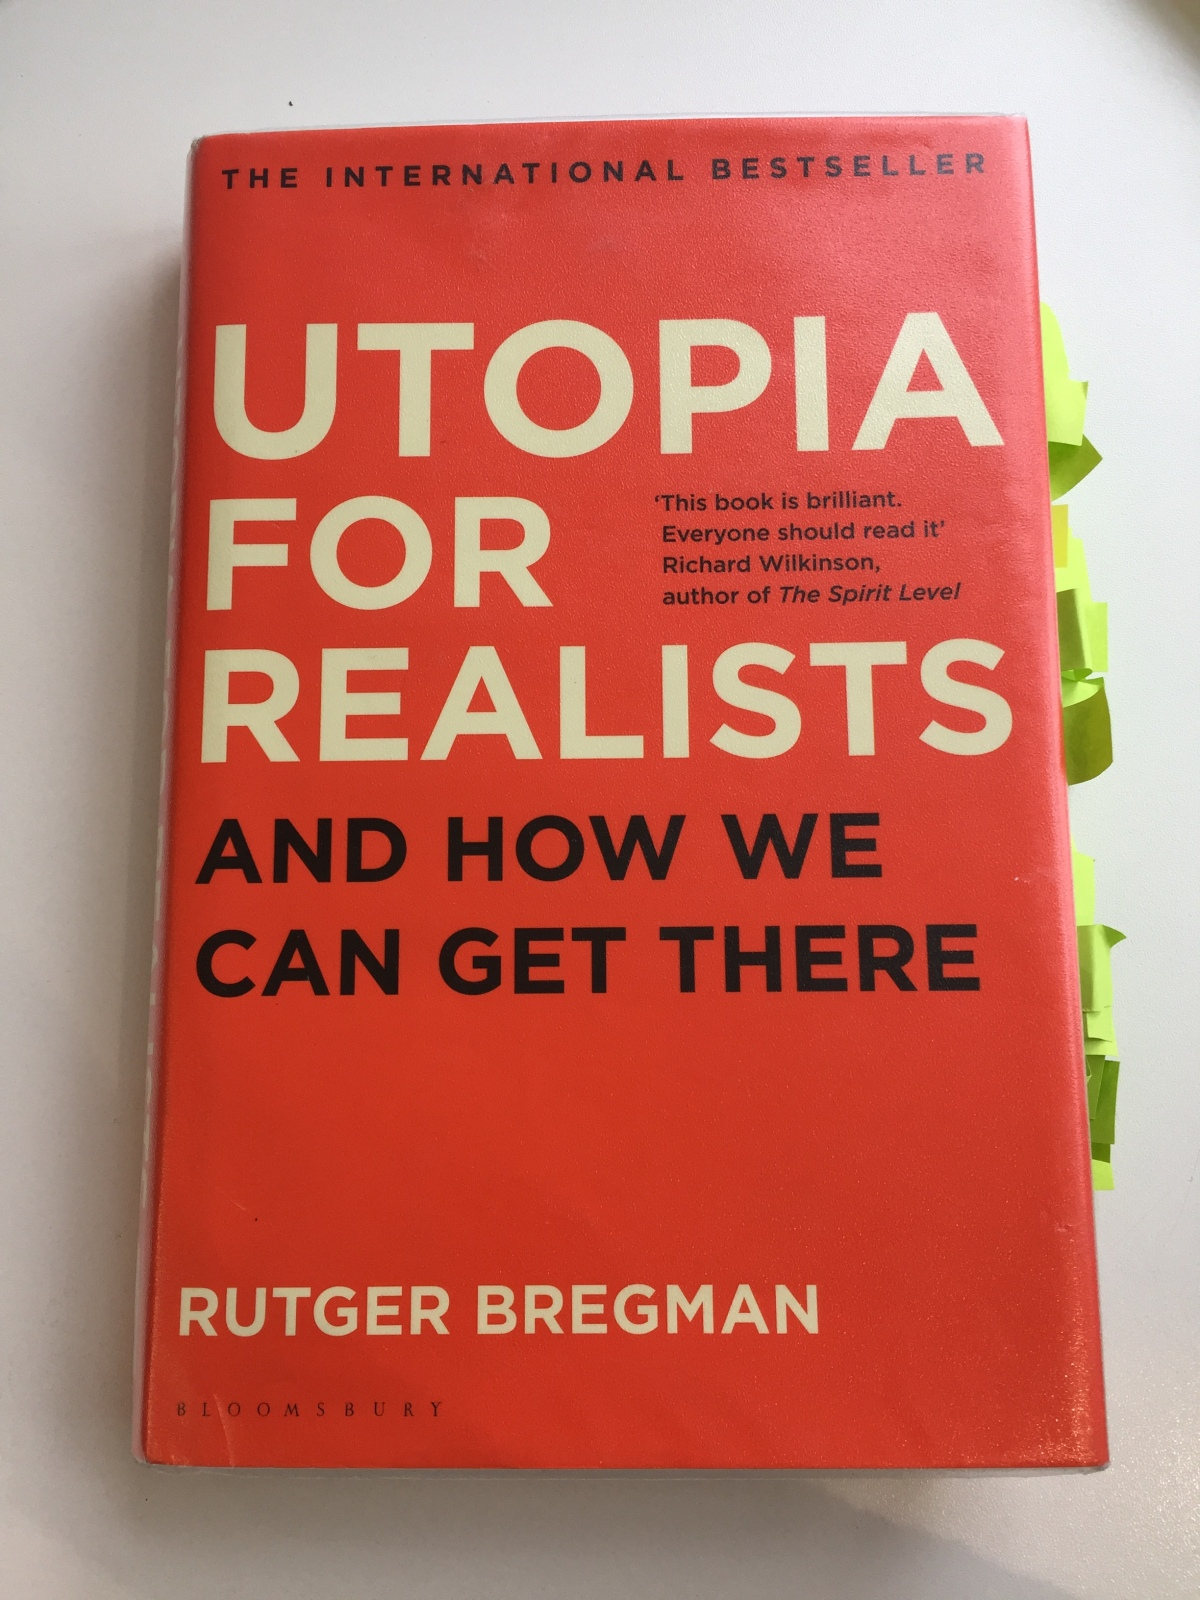 who wrote the book utopia